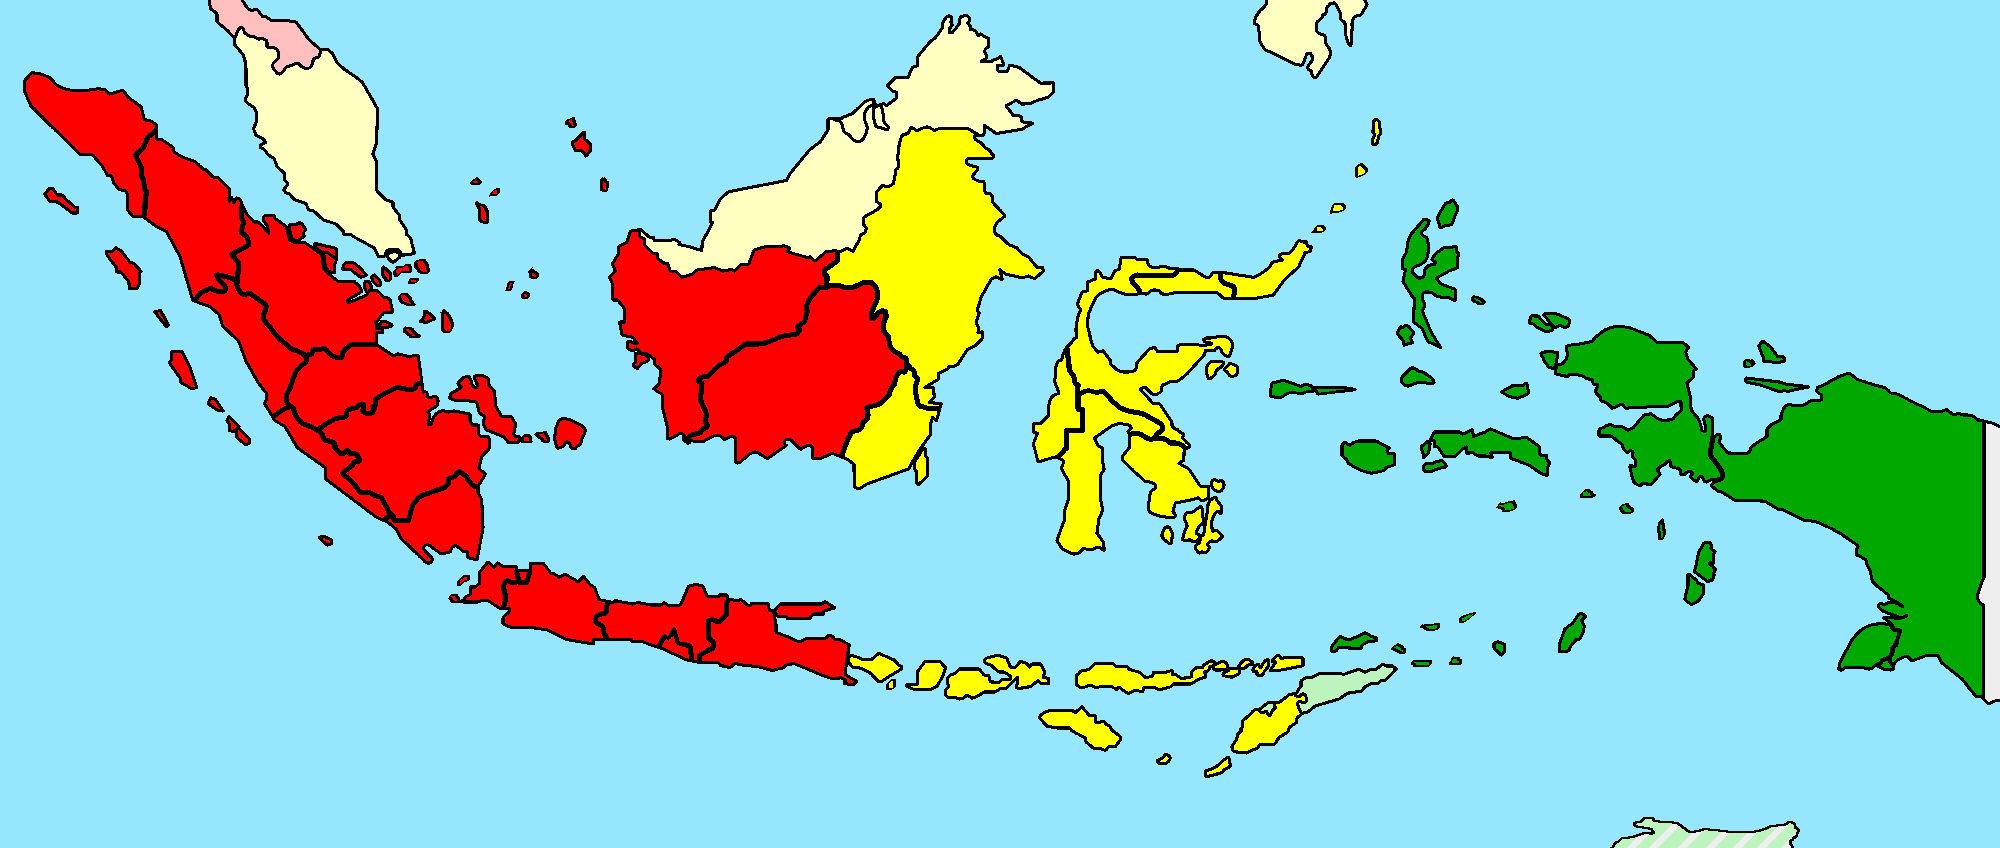 Filetime zones of indonesiag wikimedia commons filetime zones of indonesiag gumiabroncs Images